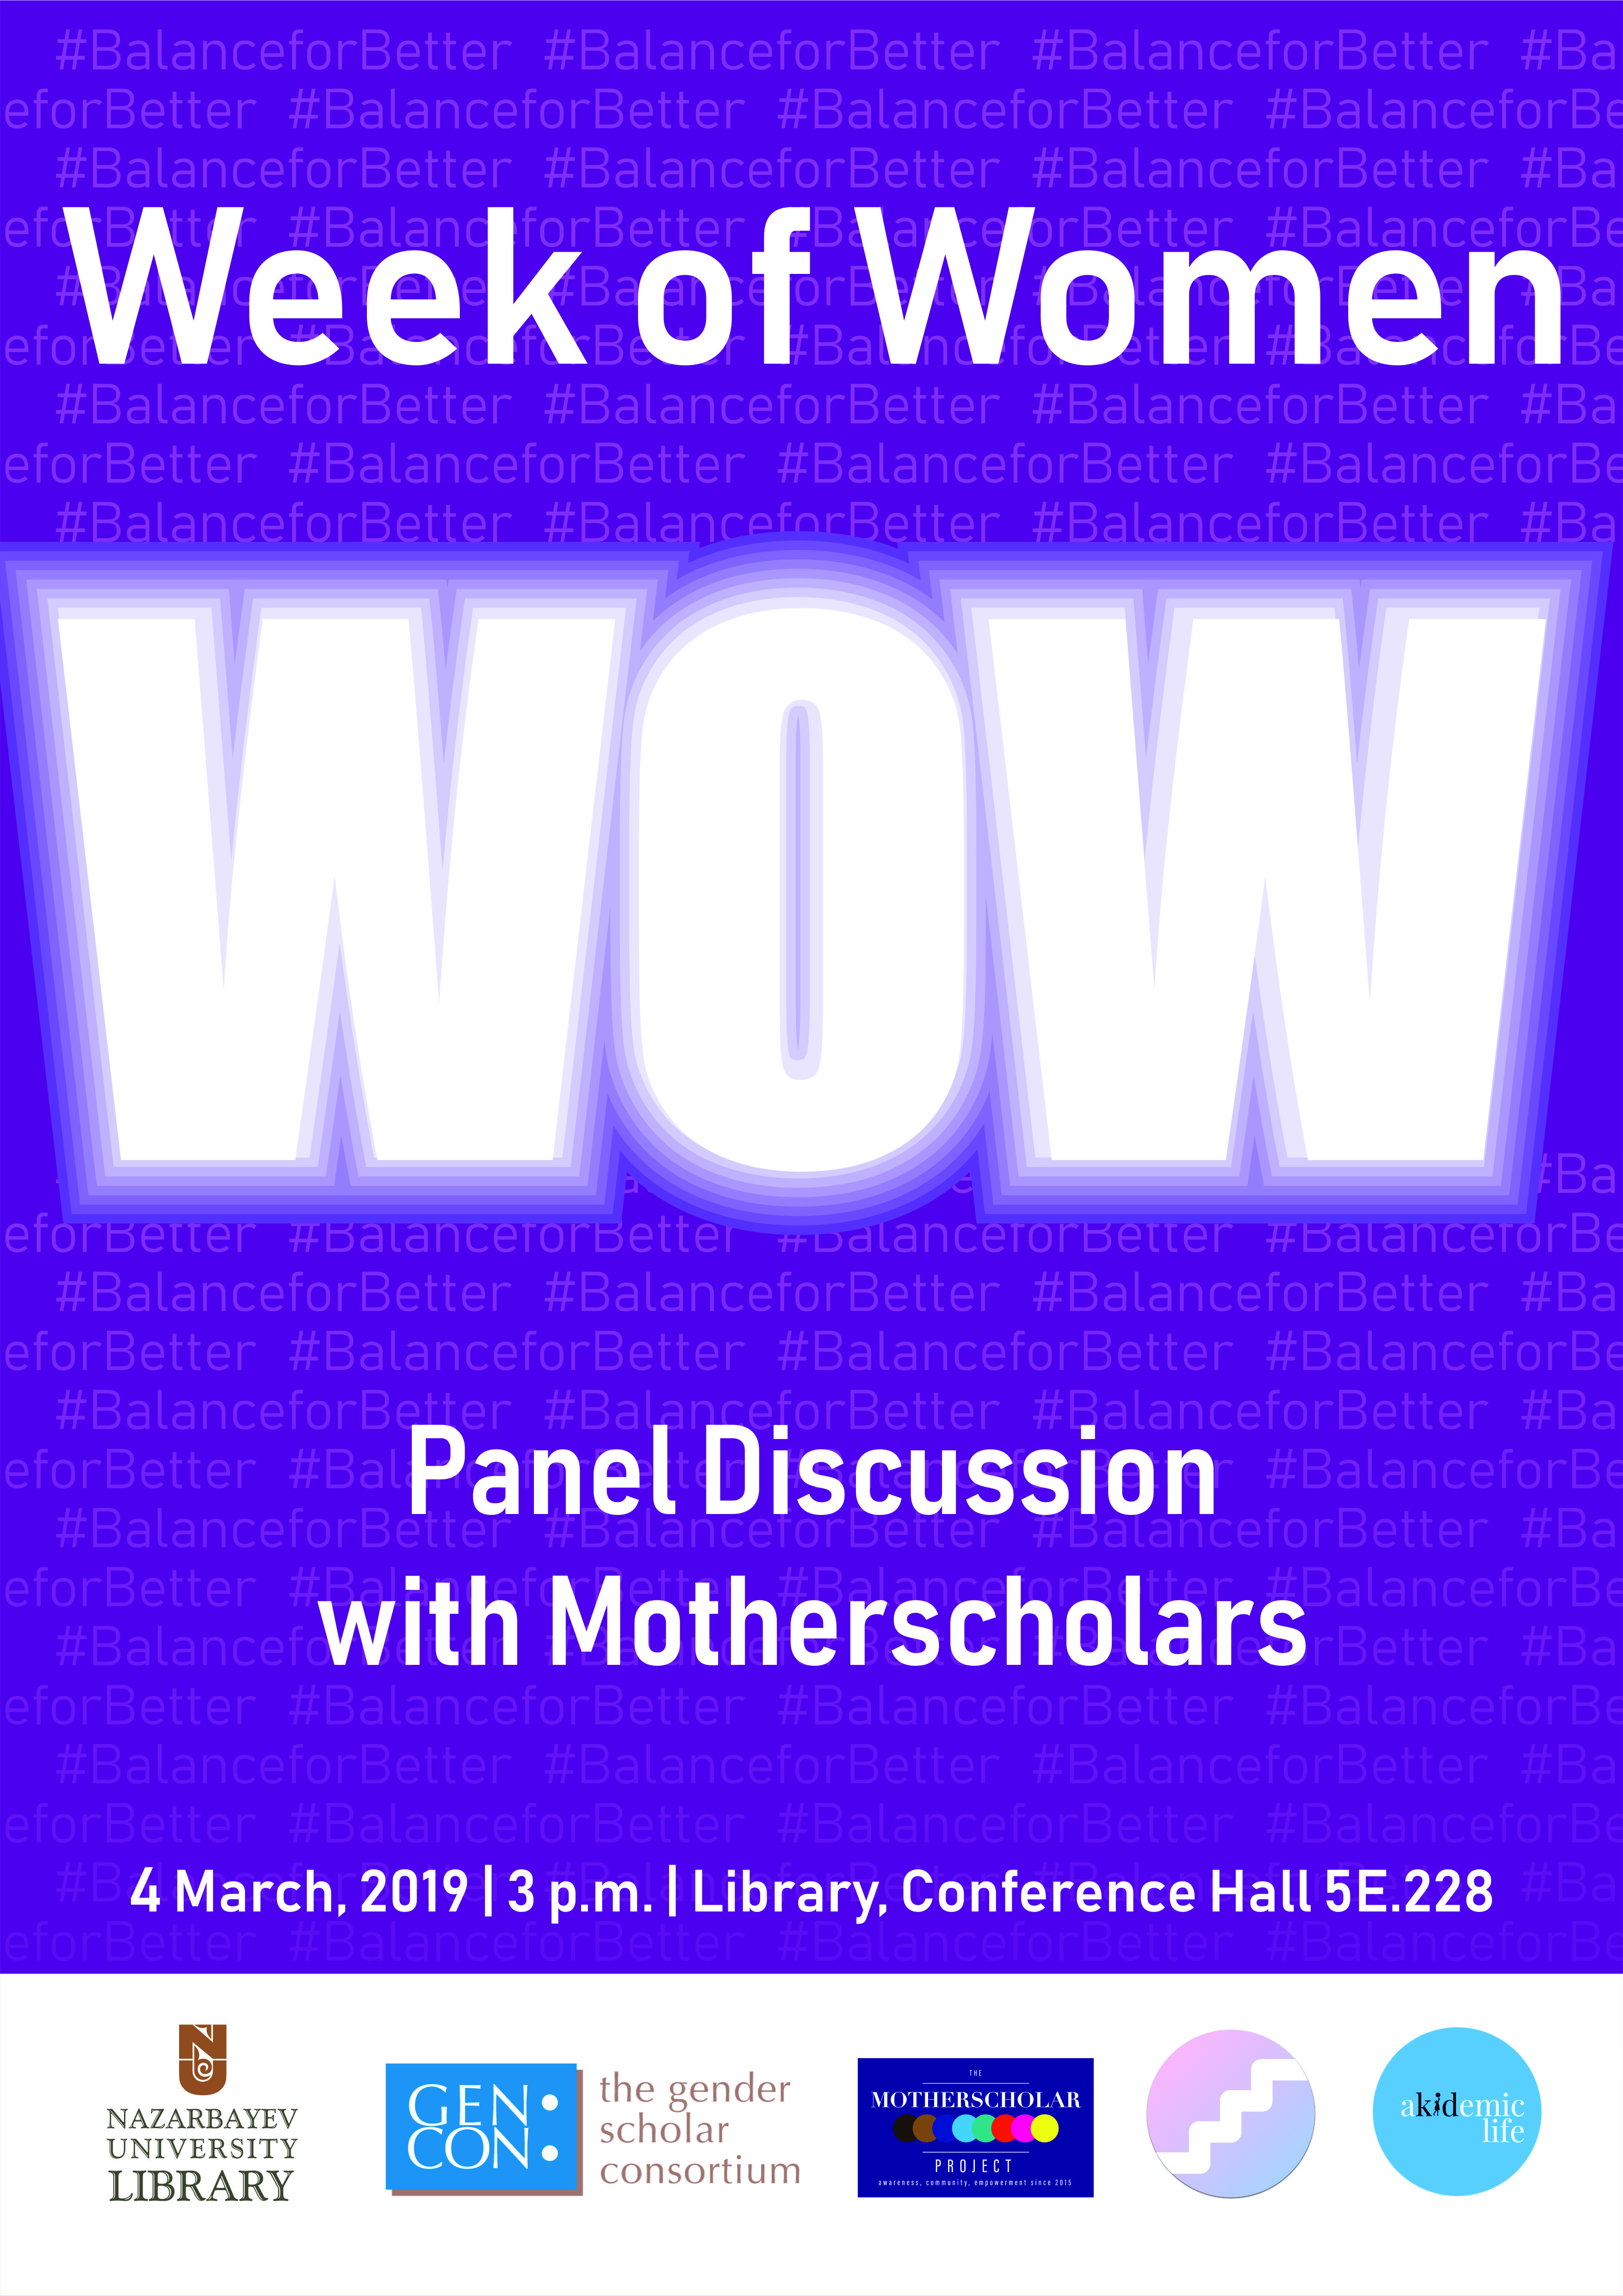 Week of Women at NU Library.  Panel Discussion with Motherscholars